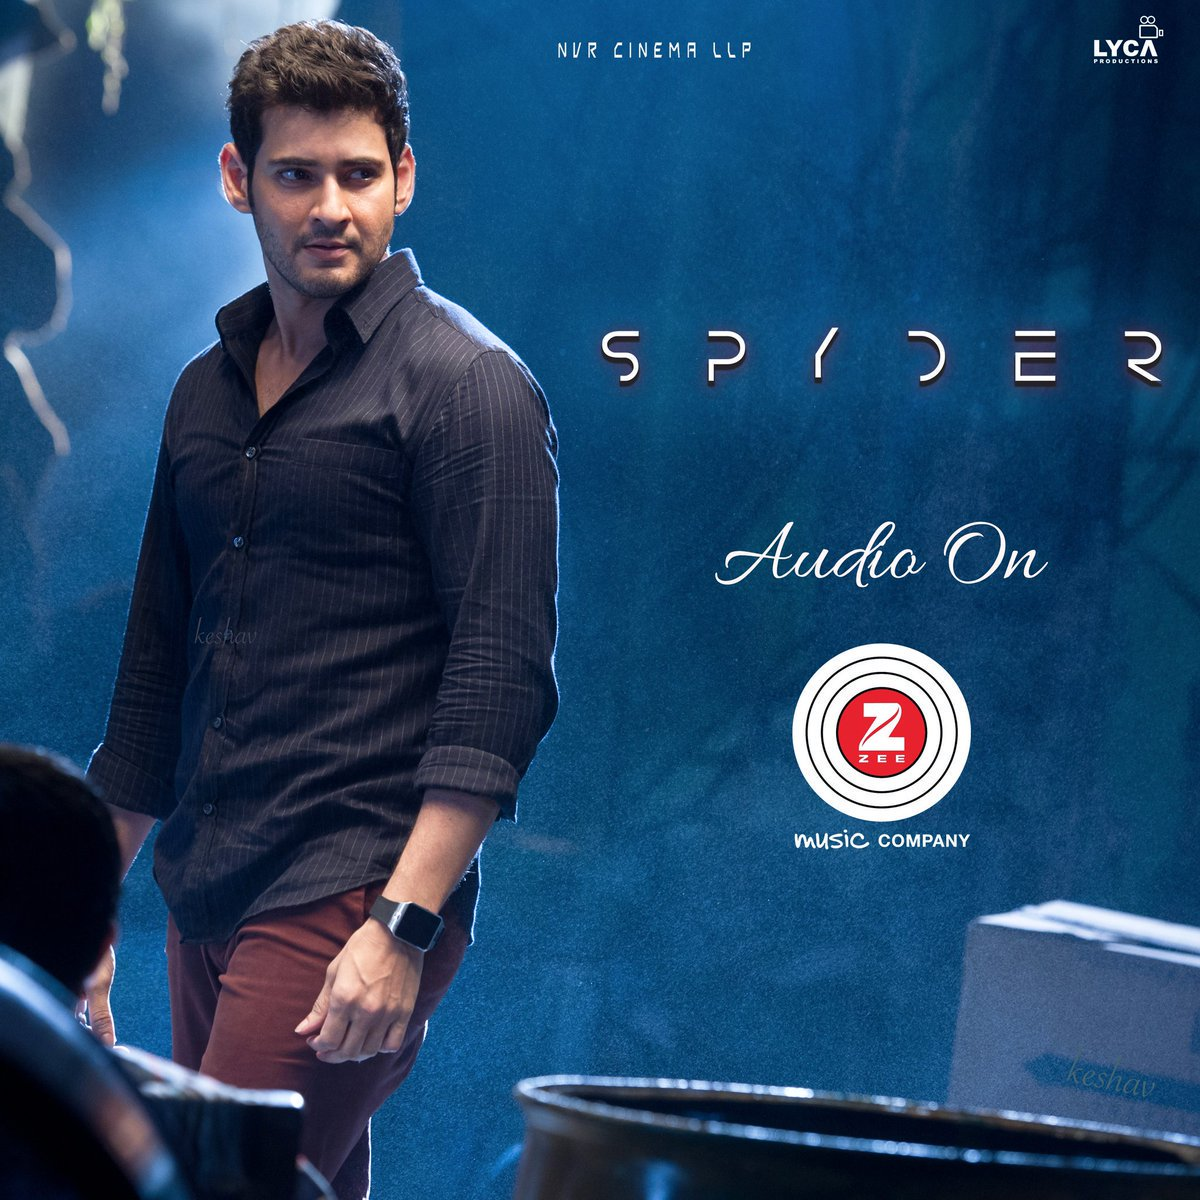 Mahesh babu nani telugu movie mp3 songs free download songsseven.